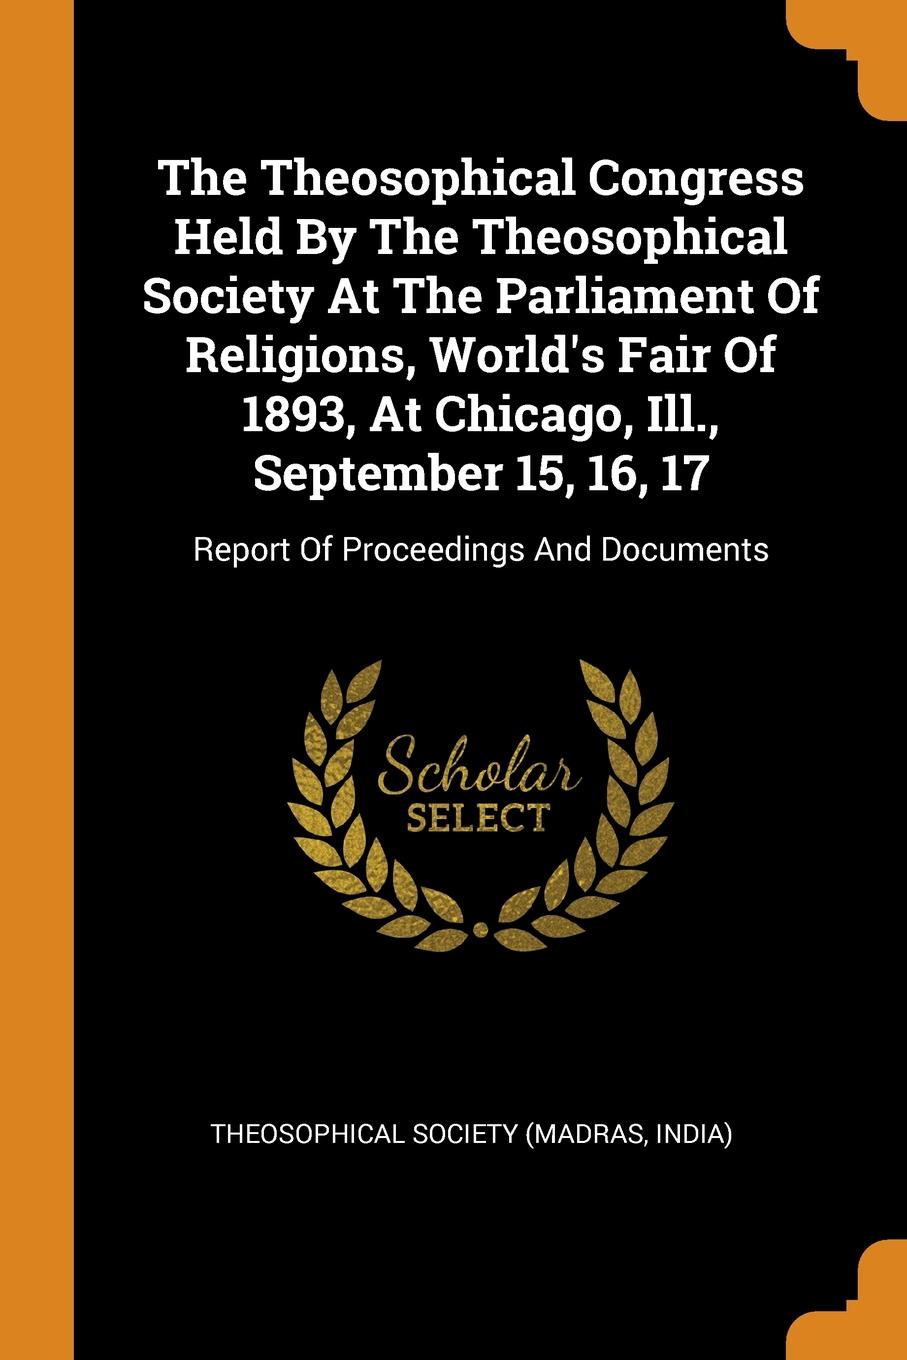 The Theosophical Congress Held By The Theosophical Society At The Parliament Of Religions, World.s Fair Of 1893, At Chicago, Ill., September 15, 16, 17. Report Of Proceedings And Documents